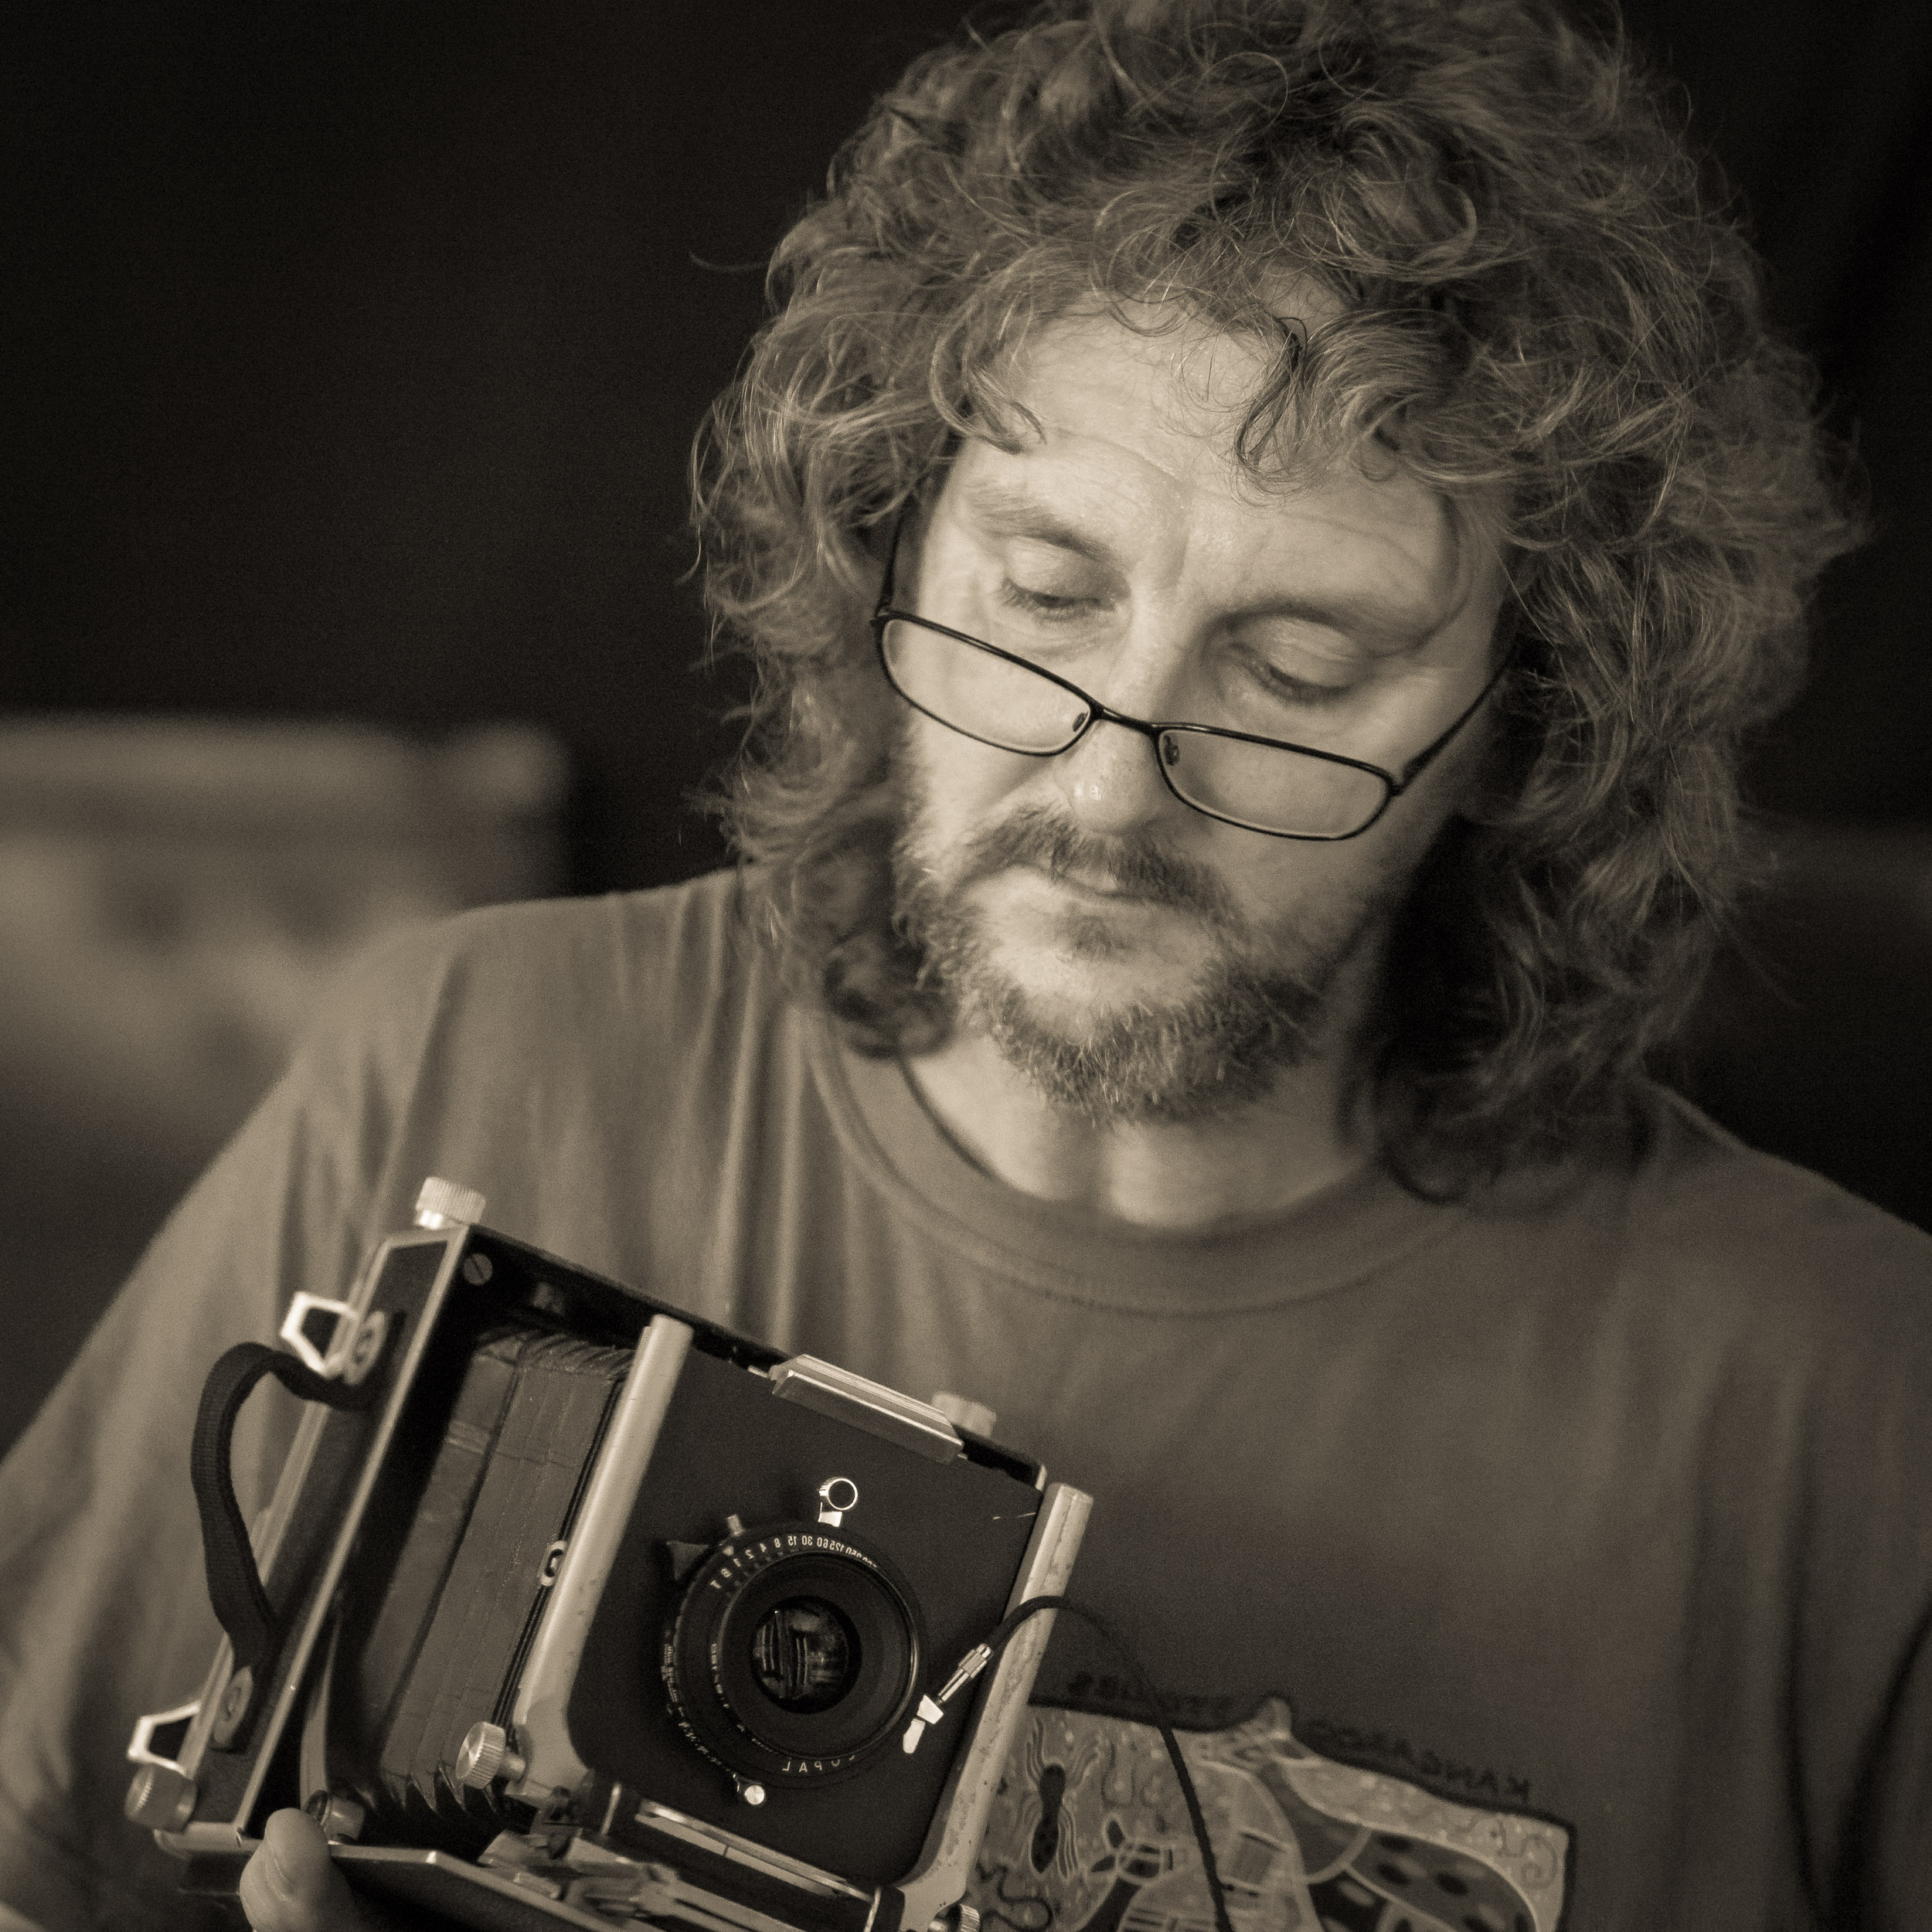 Self portrait with Linhof Technica 3 - Something for my website taken five or more years ago